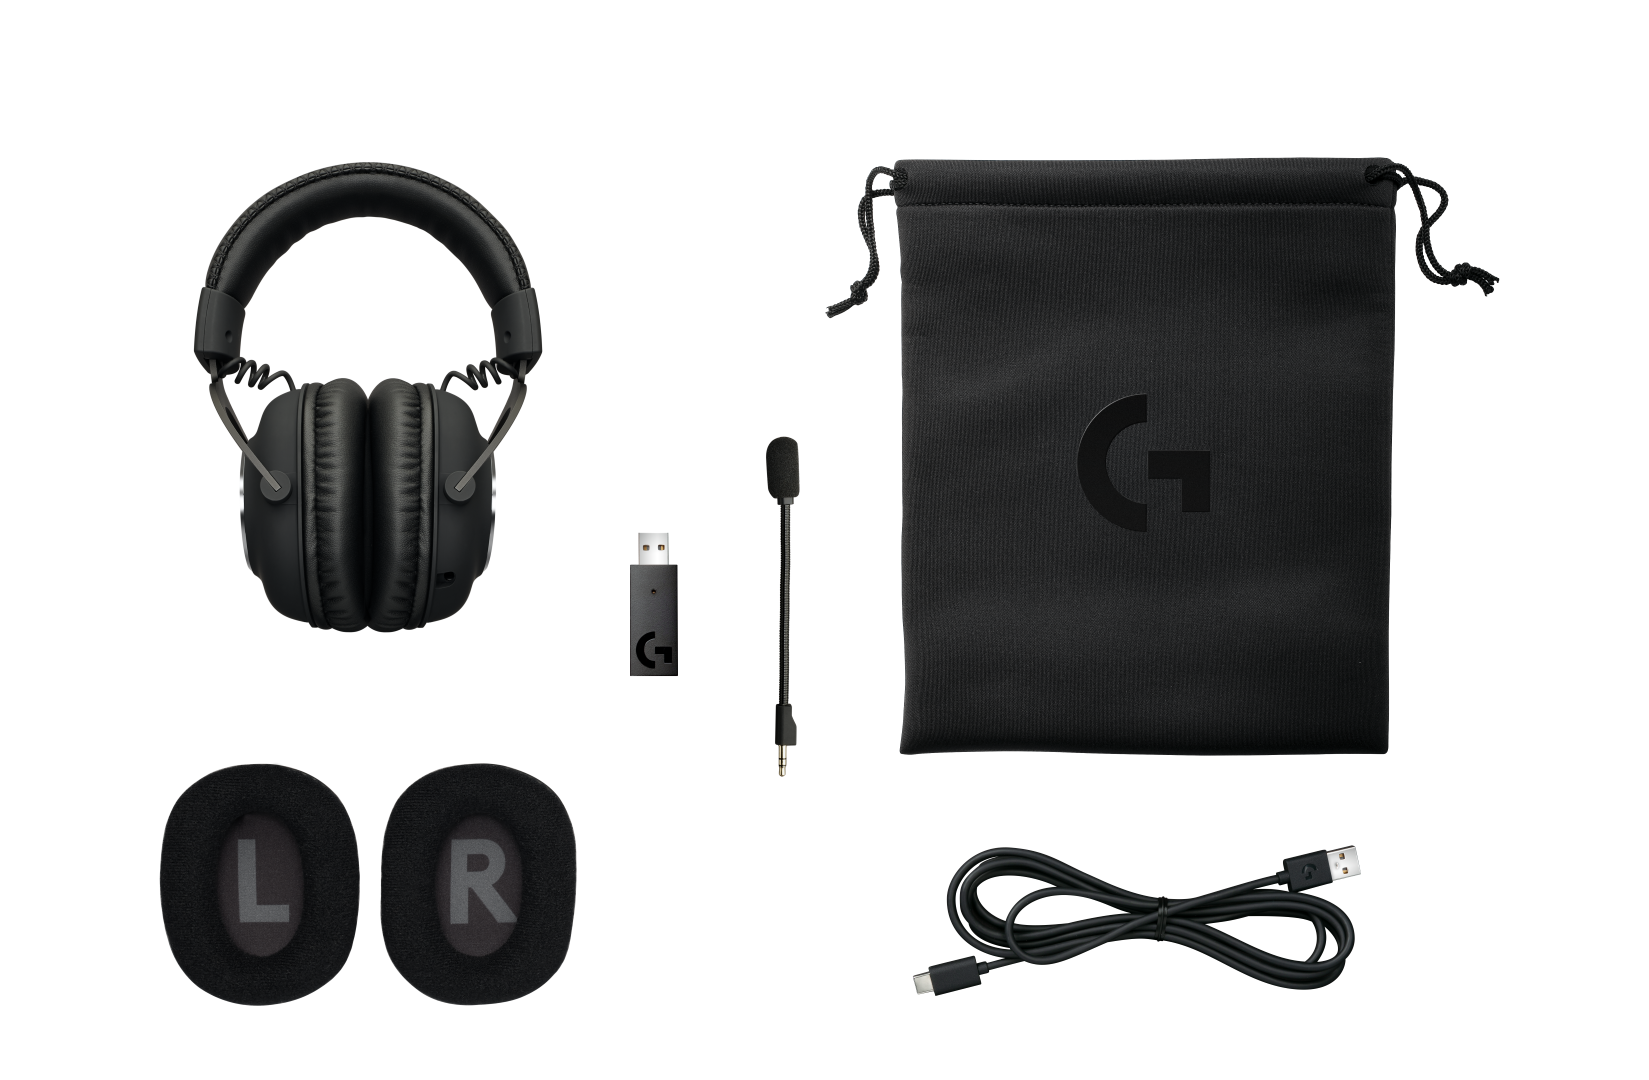 Logitech G Pro X Wireless Gaming Headphones